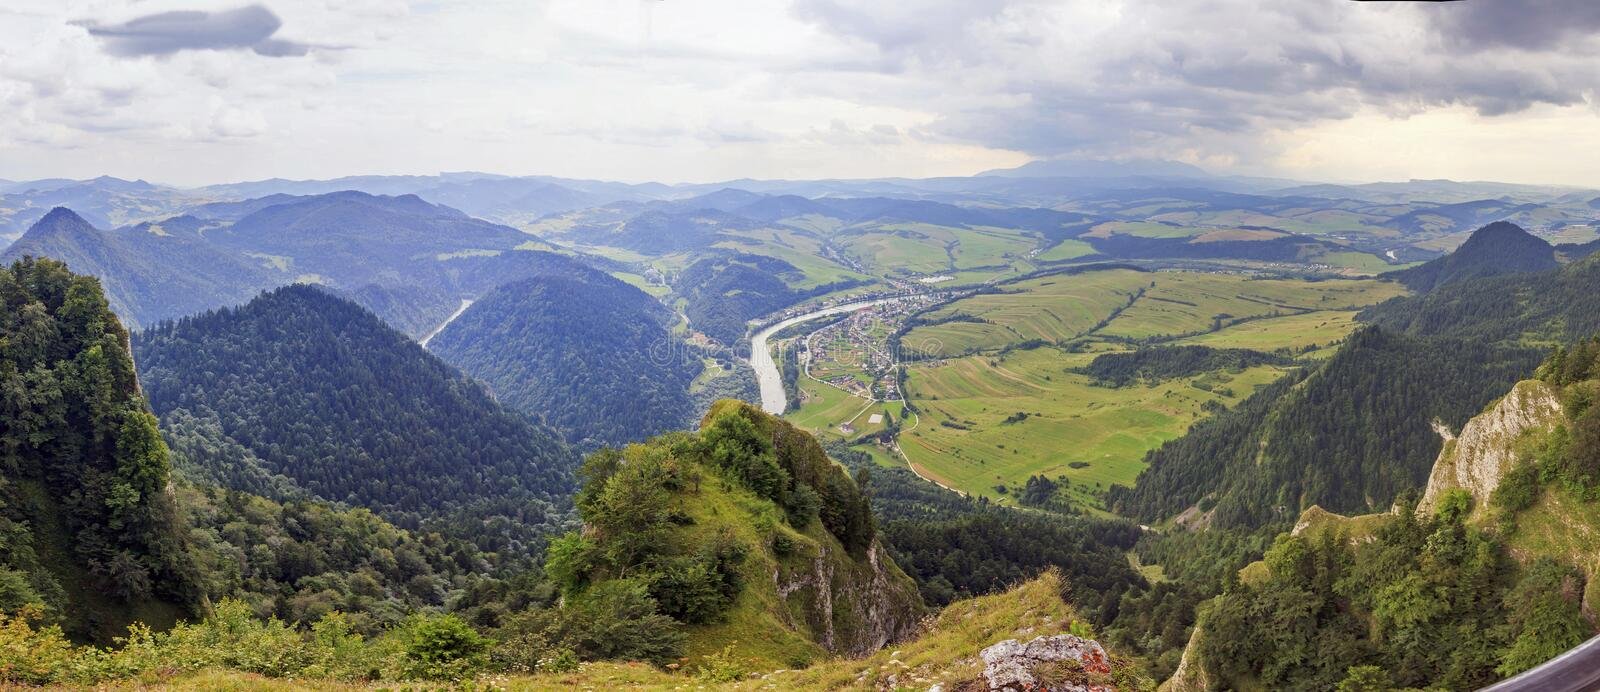 Panoramic photo of Pieniny Mountains, Poland. With large vistas of space down below: peaks, forest, meadows, fields and villages royalty free stock photography